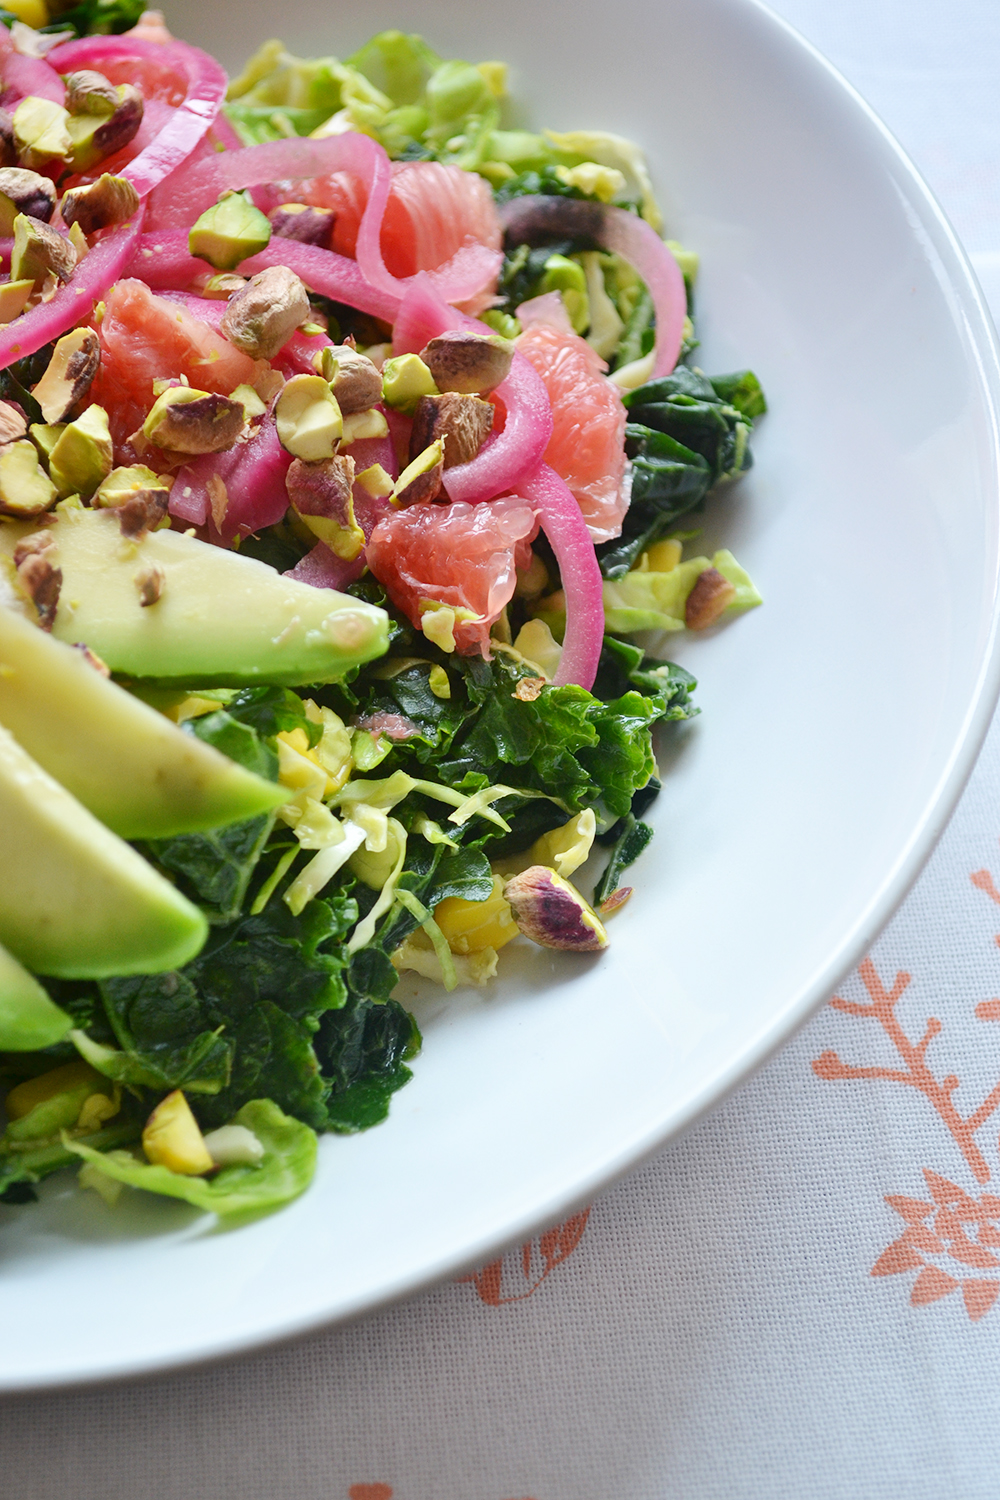 Summer Shaved Brussels Sprout and Kale Salad 1